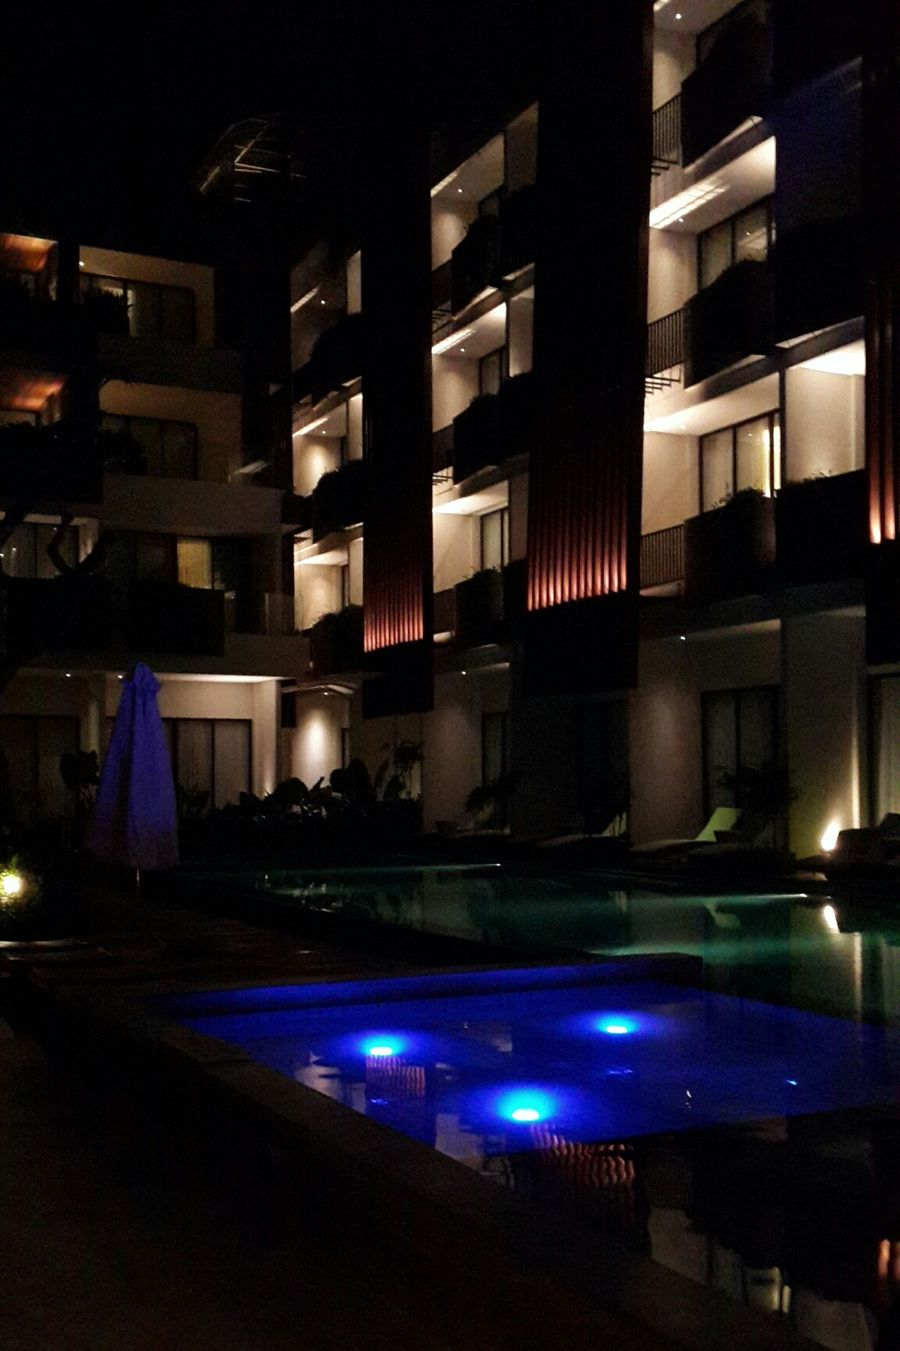 Nite all Holiday Hotel Pool Nice Atmosphere Architecture Seminyak Bali Night Photography